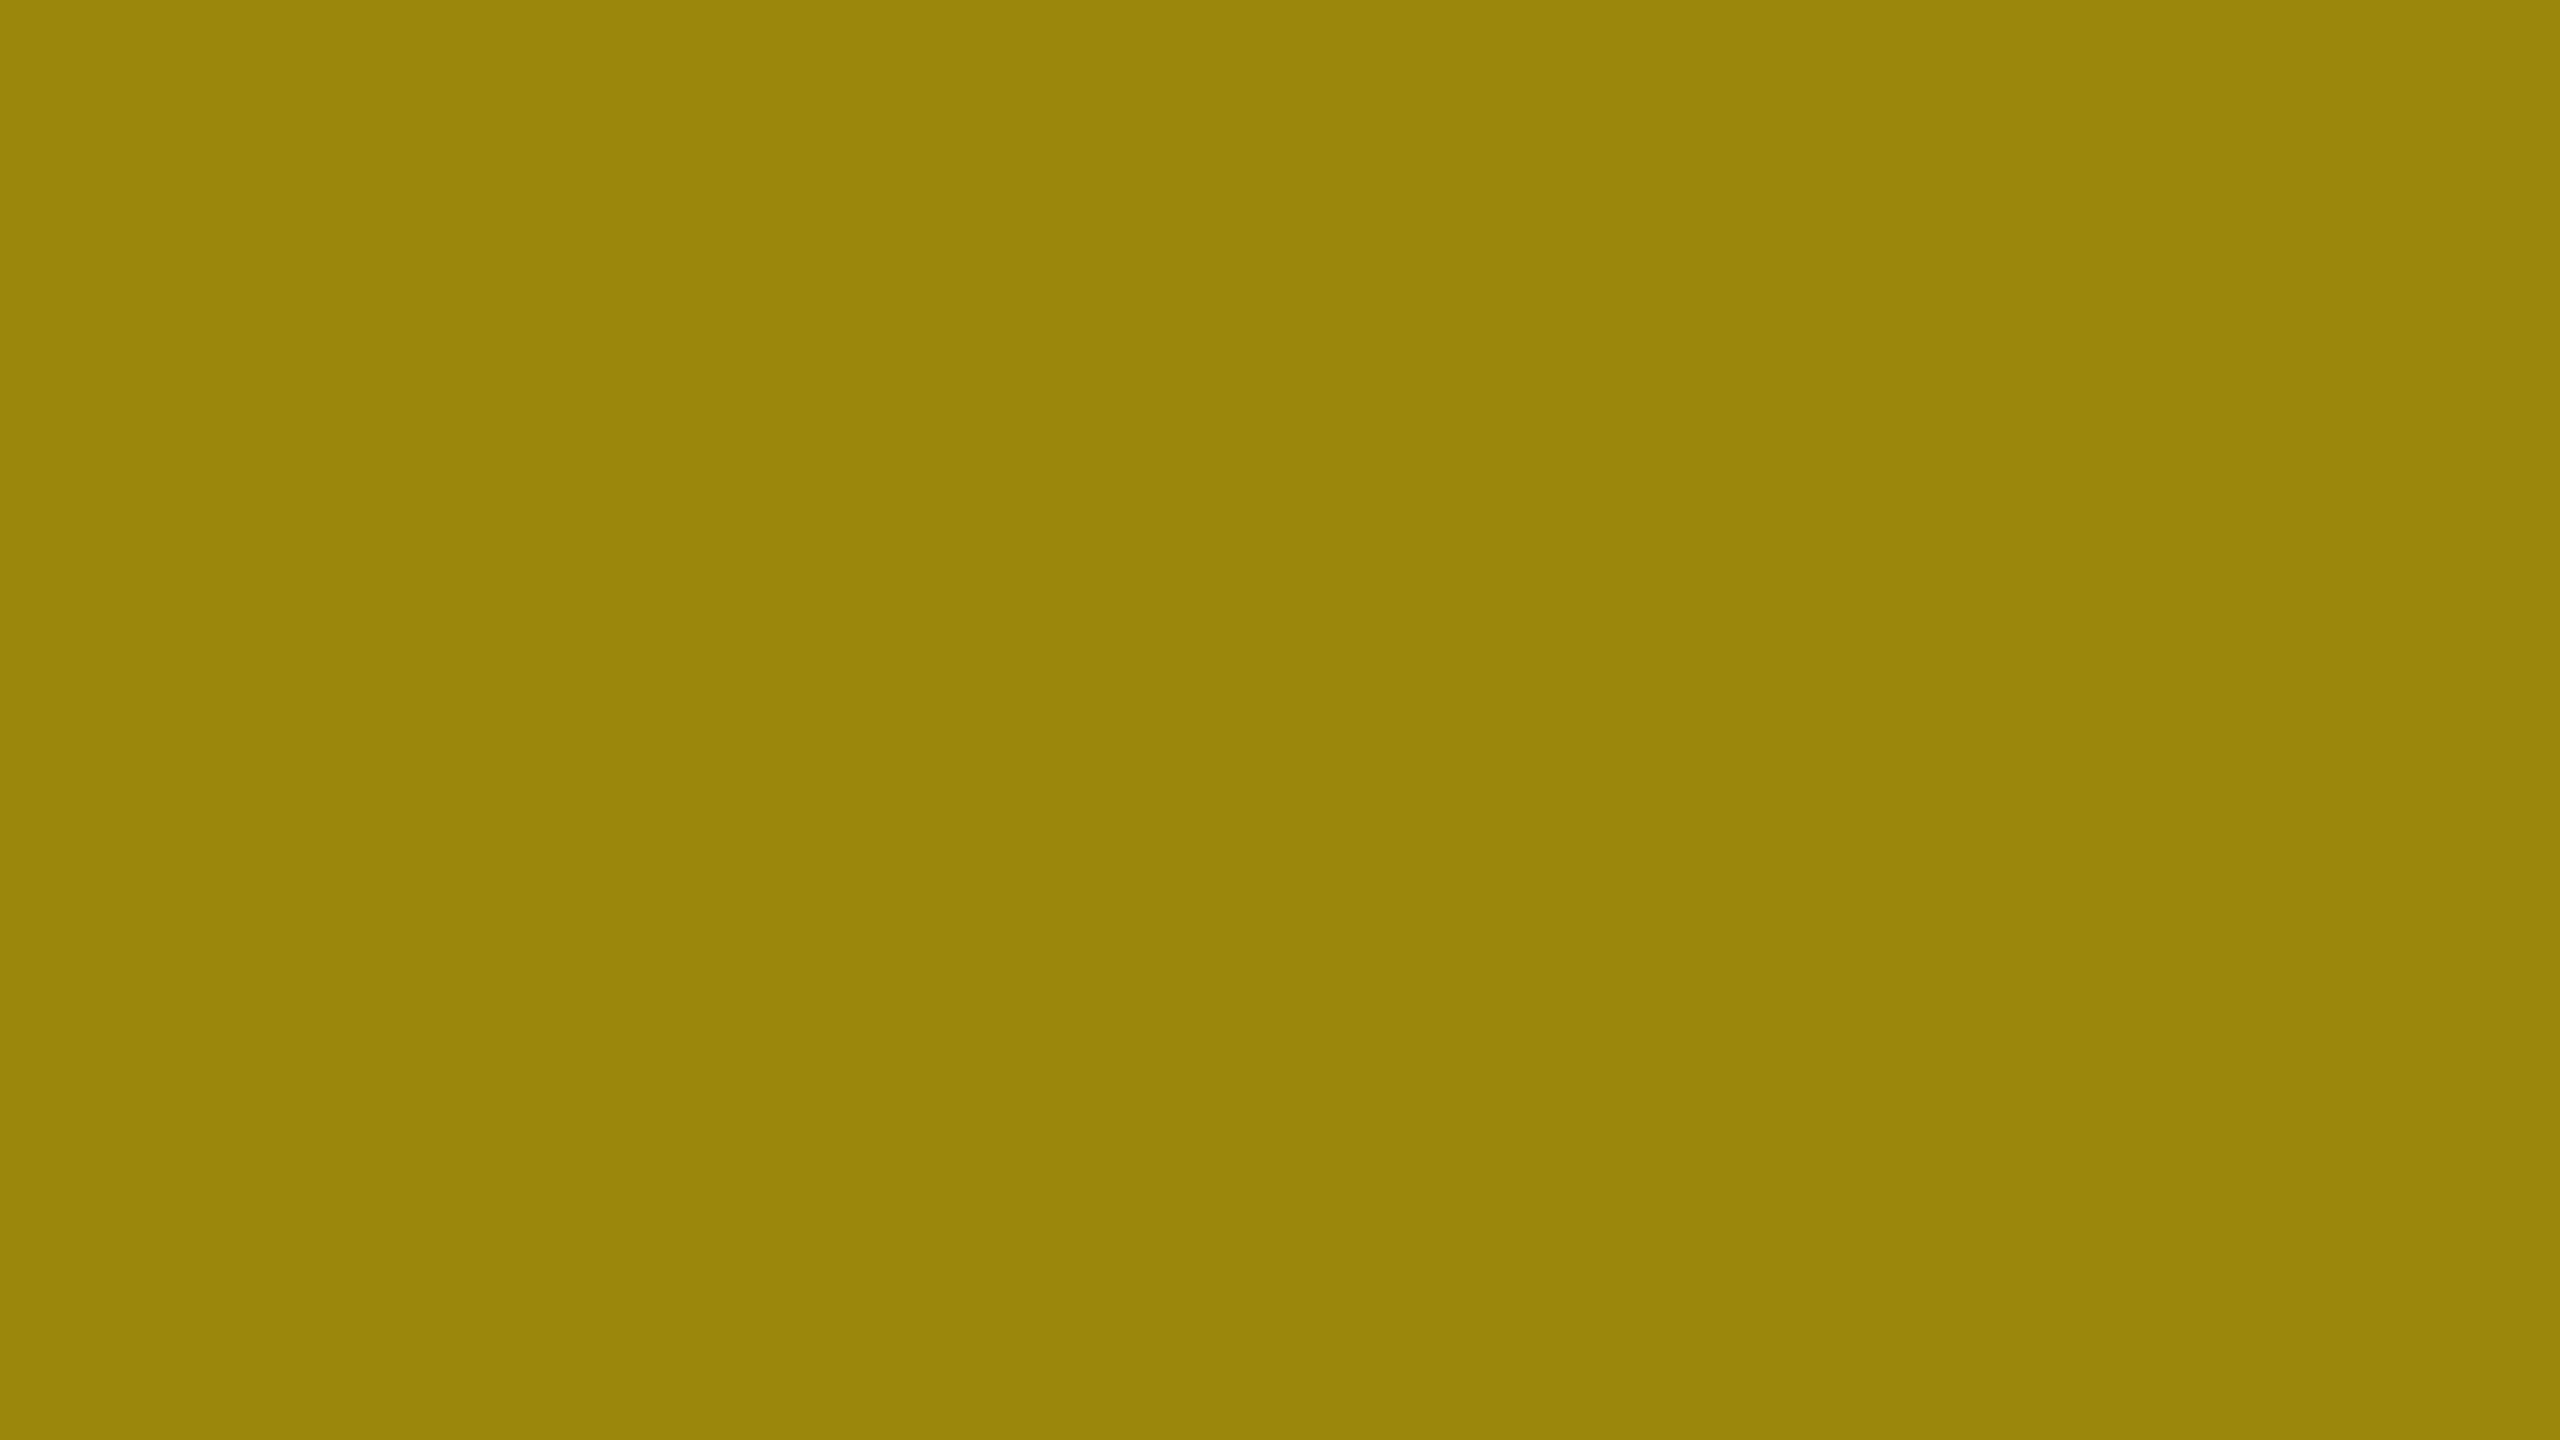 2560x1440 Dark Yellow Solid Color Background